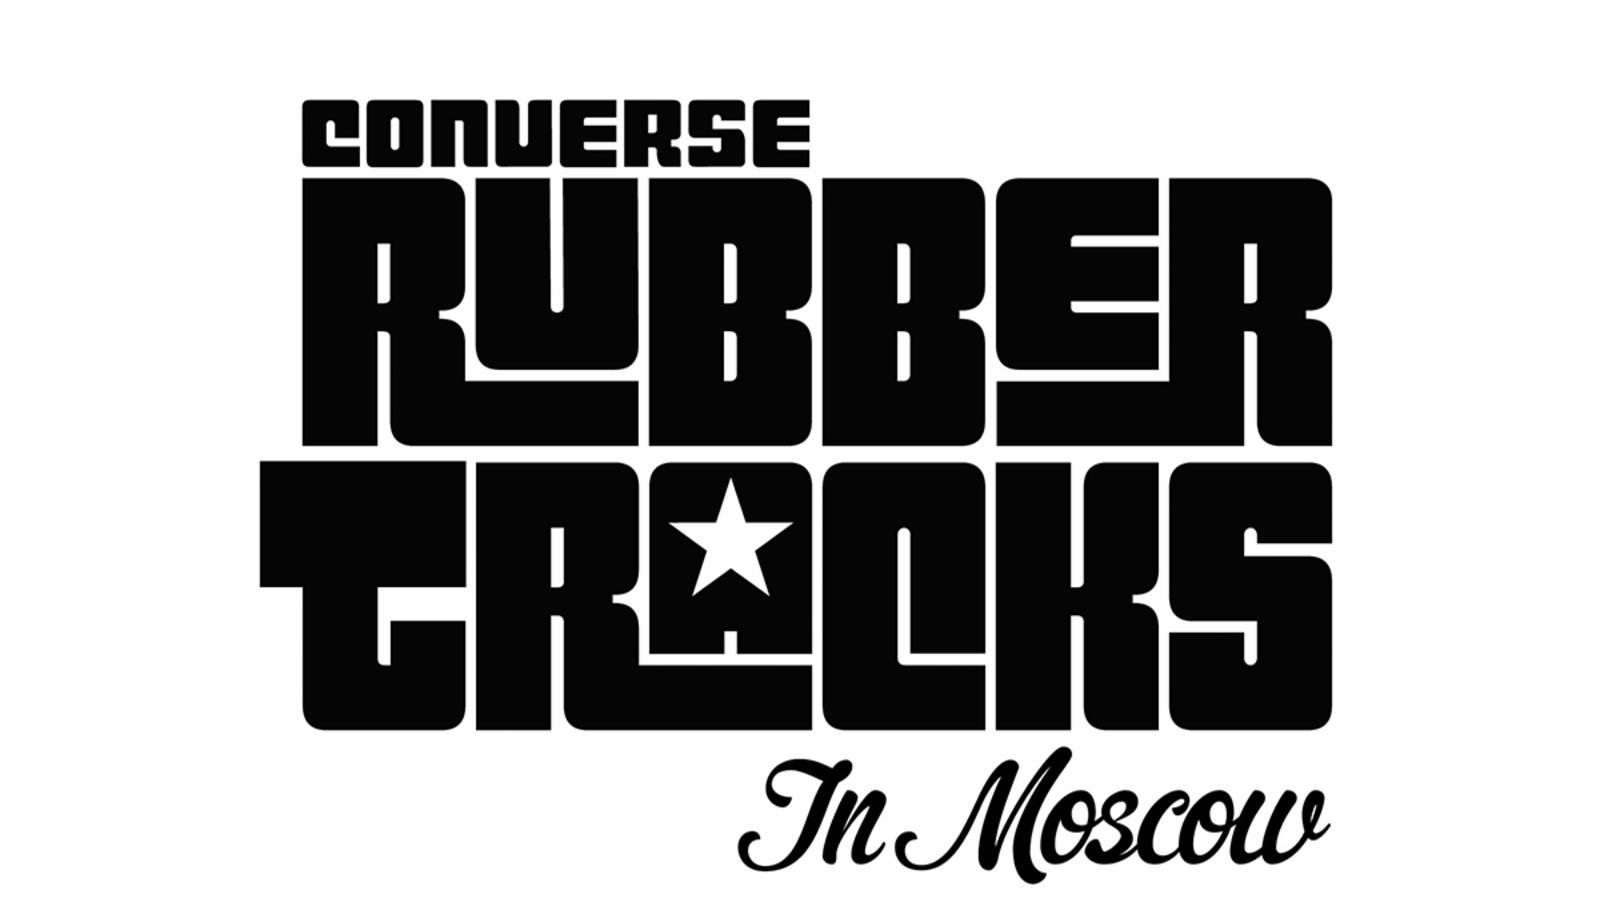 49d884d96ff9 The converse rubber tracks experience launches in moscow nike news jpg  1600x900 Nike converse logo